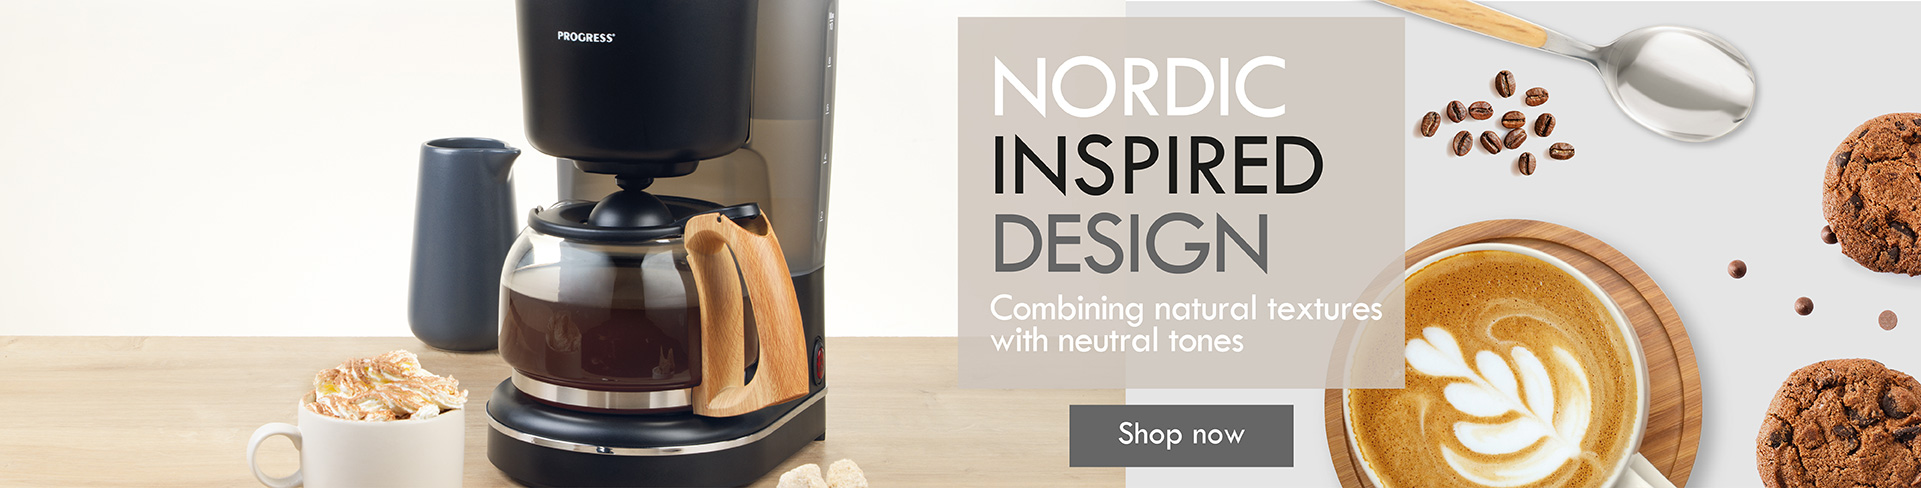 Progress Scandi coffee maker